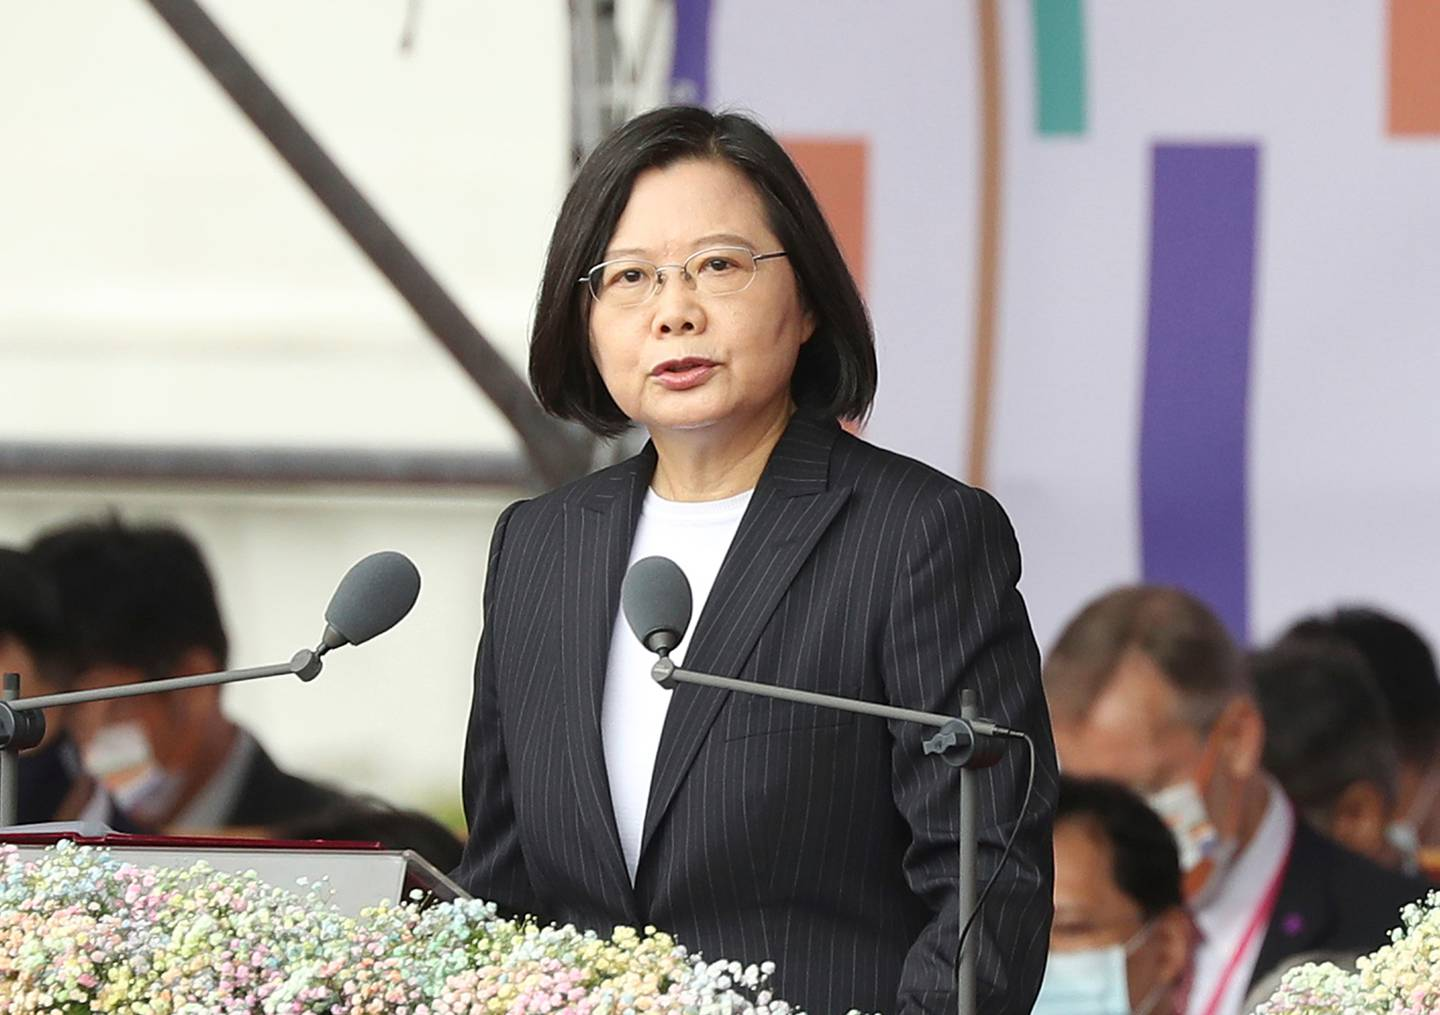 Relations between Beijing and Taipei have deteriorated since Tsai Ing-wen was elected in 2016 and refused to accept the one-China principle. Photo / AP